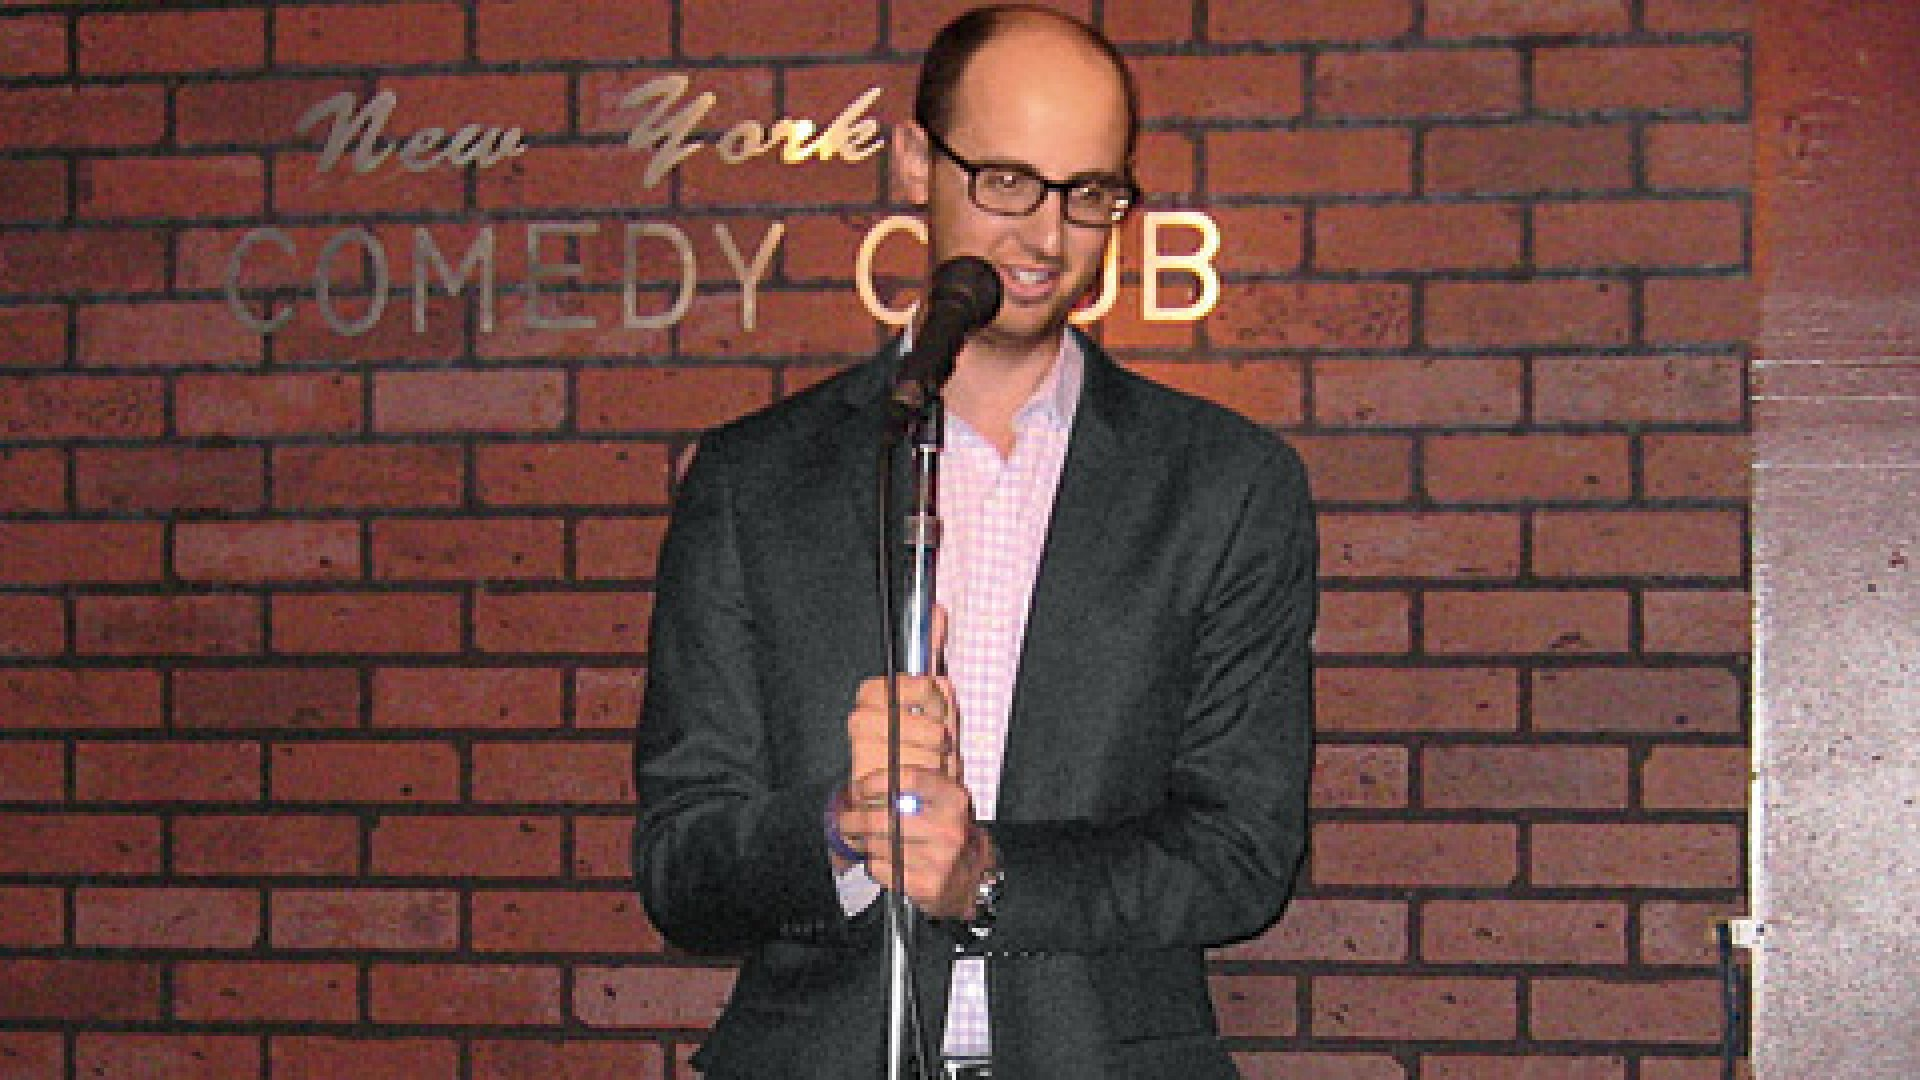 <b>Anything for a Laugh </b>Jason Green, an account executive for the New York PR agency Peppercom, in his debut comedy routine